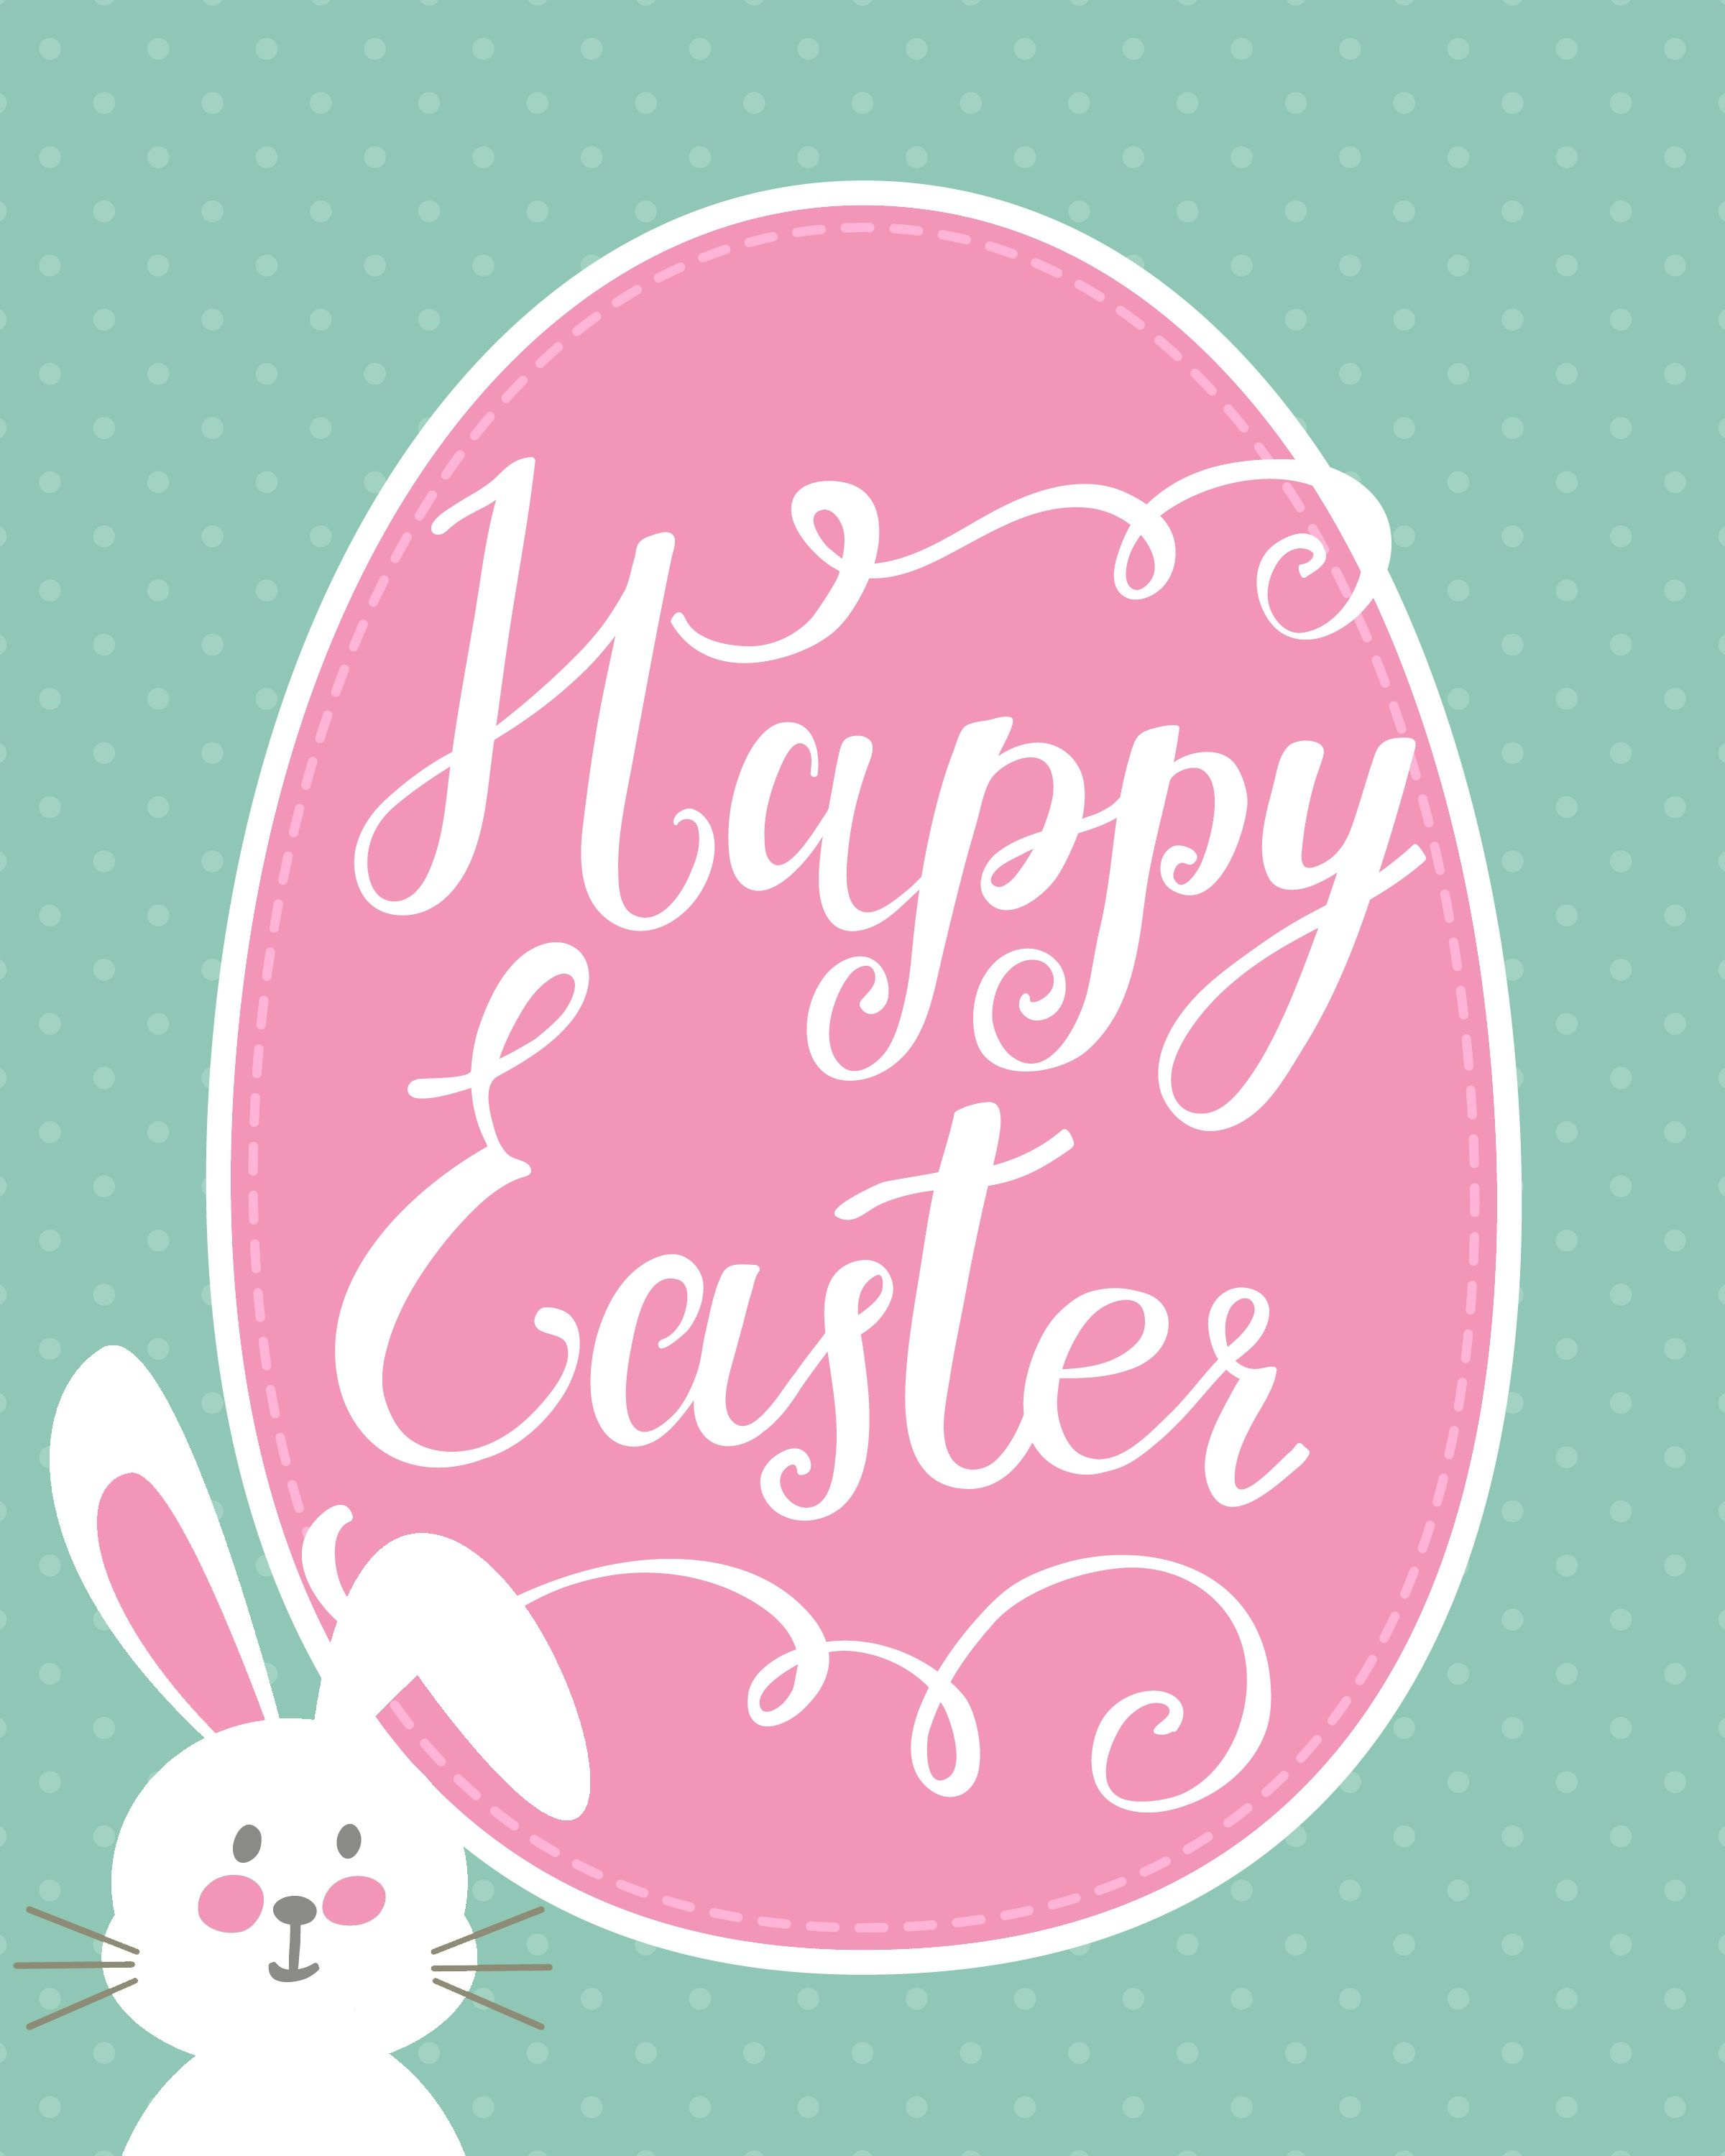 Happy Easter Bunny Printable   Holidays - Easter   Happy Easter - Free Printable Easter Images